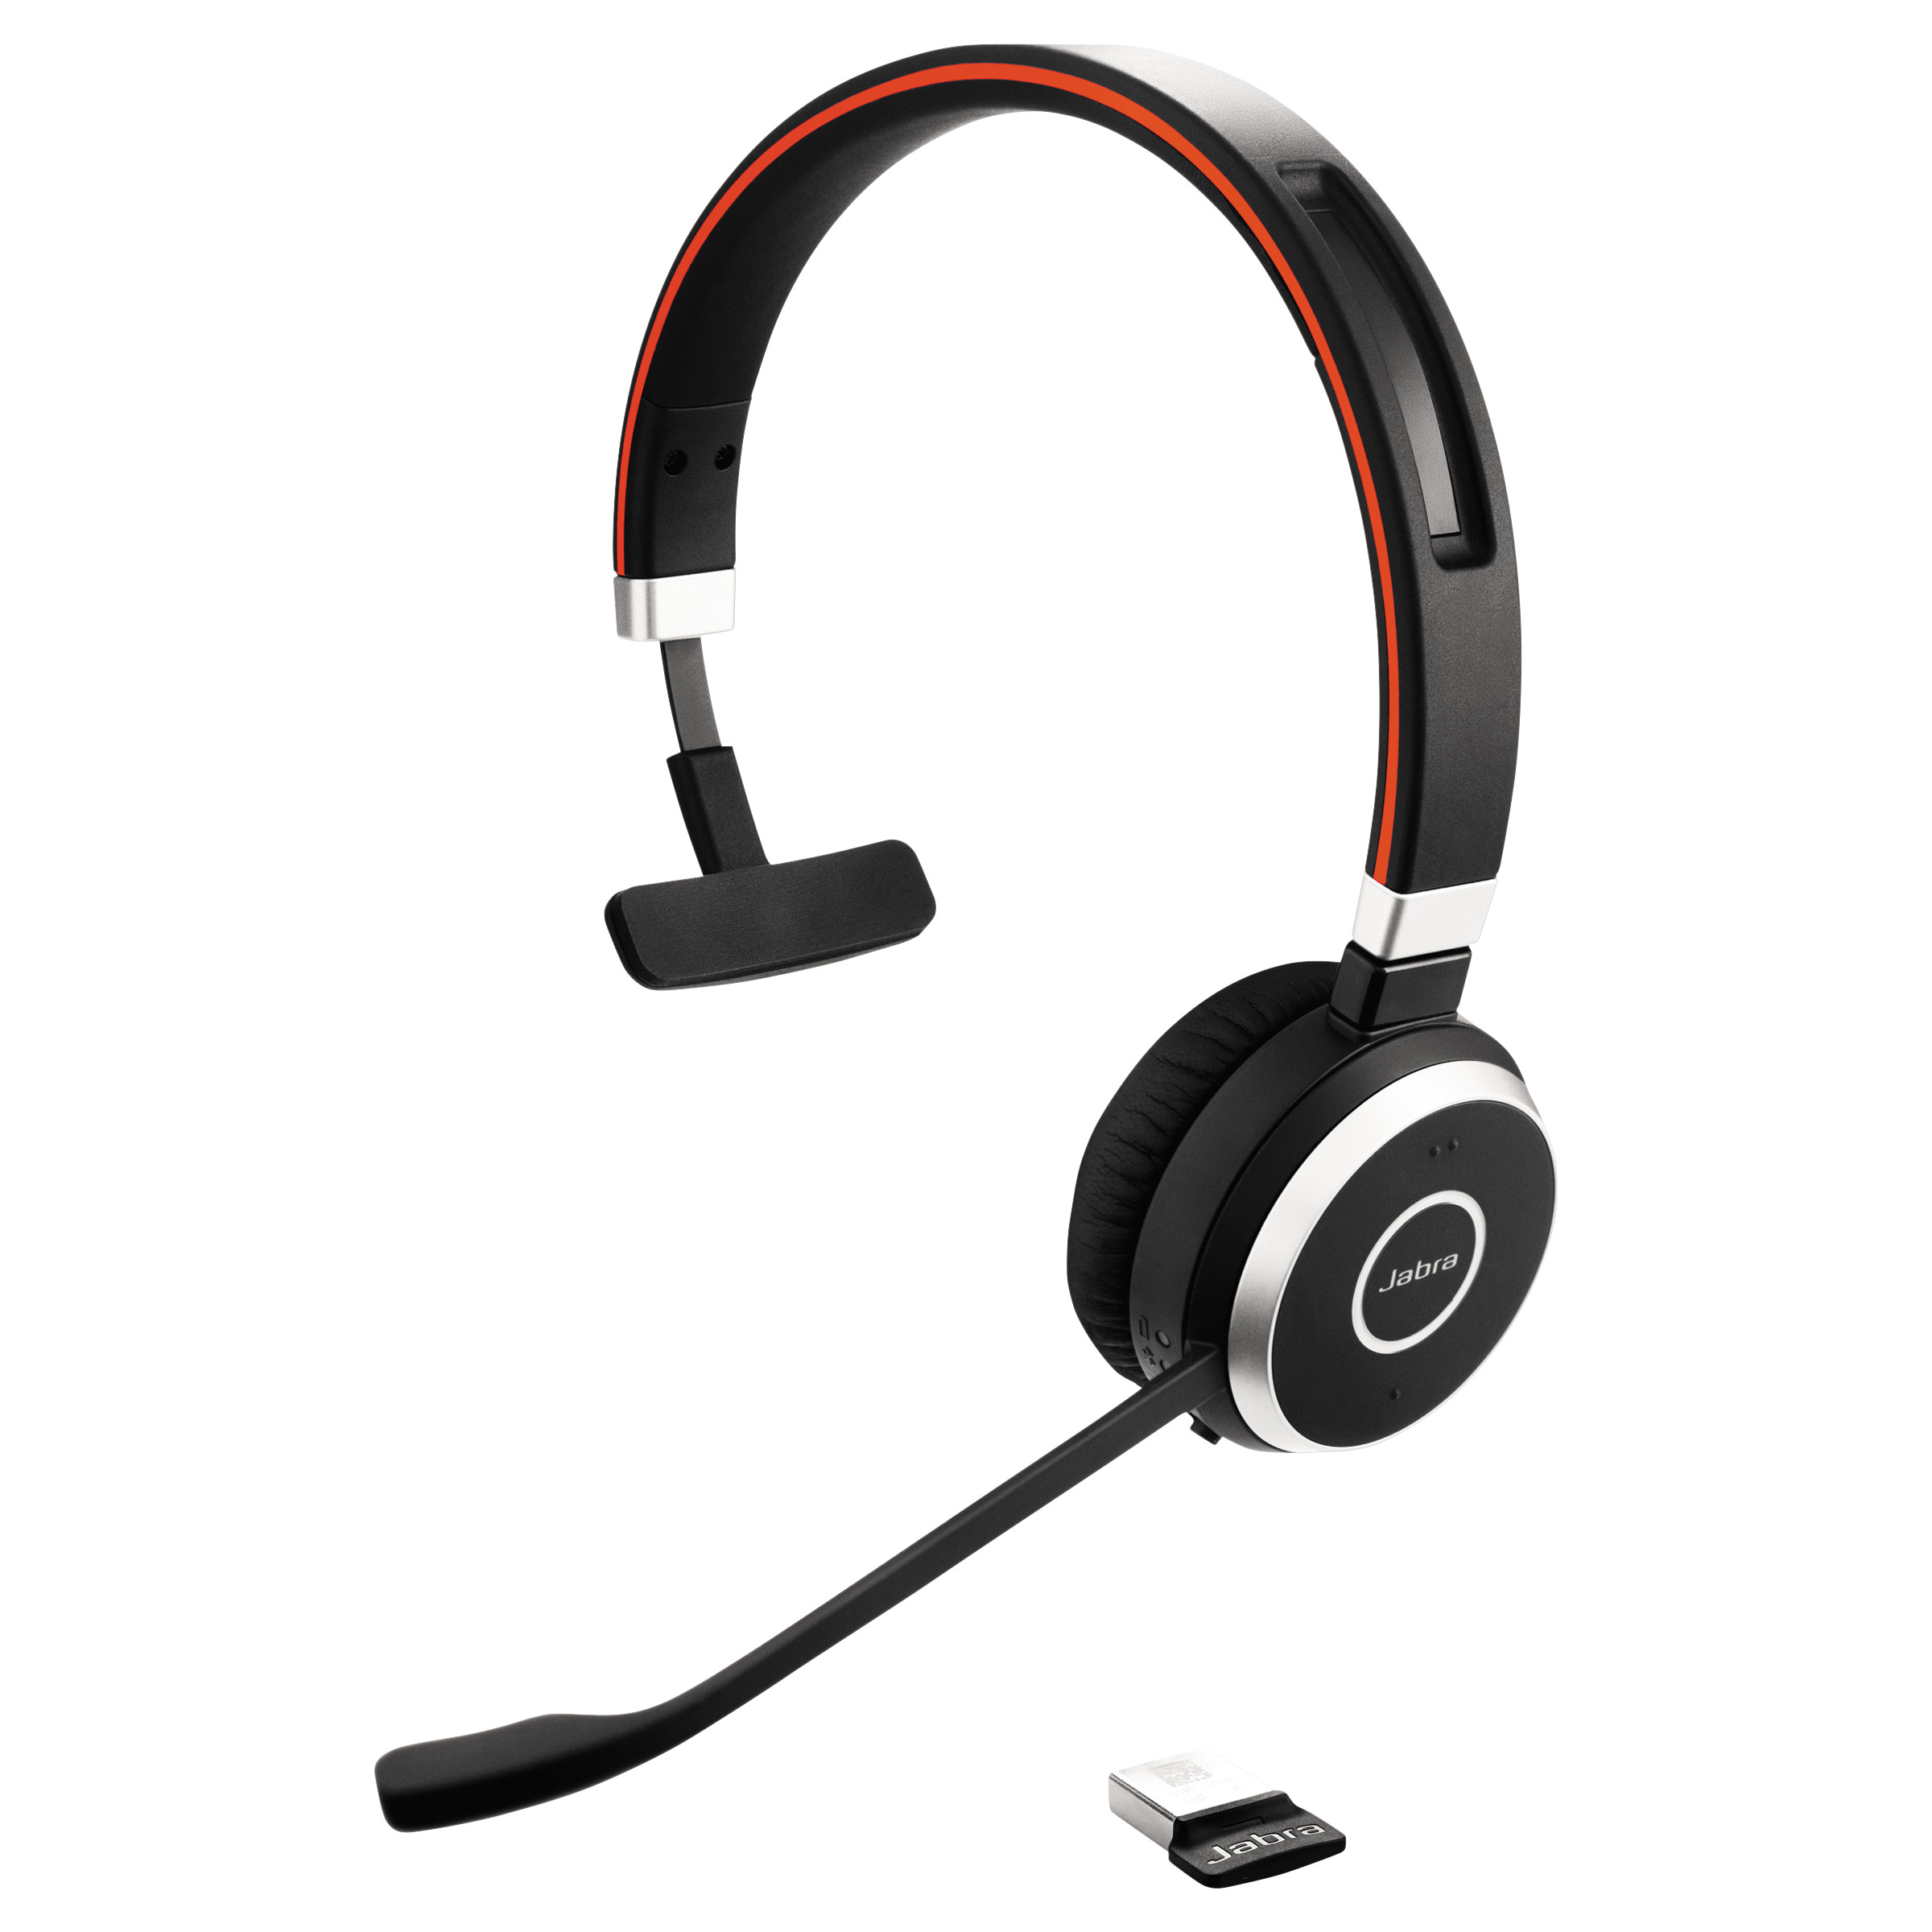 Jabra EVOLVE 65 UC Monaural Over-the-Head Headset